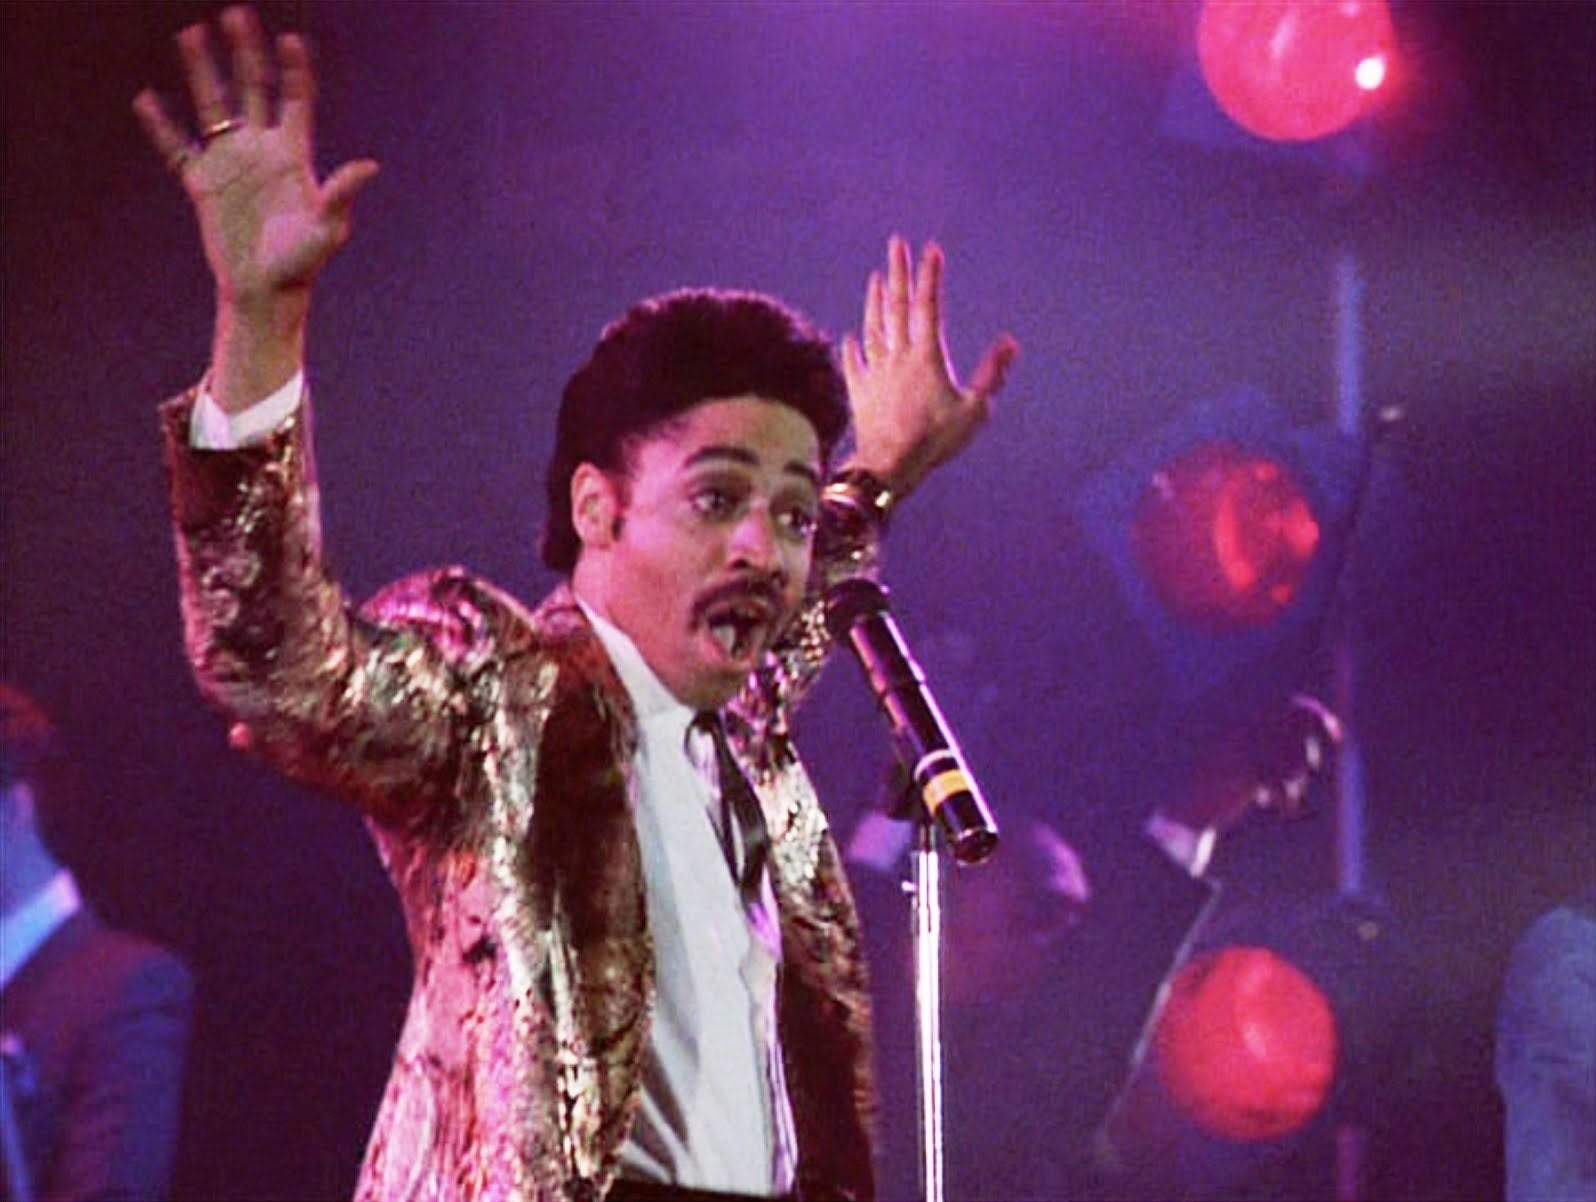 Hey guess what? This is Morris Day and he's the guest on this week's Another Round podcast!